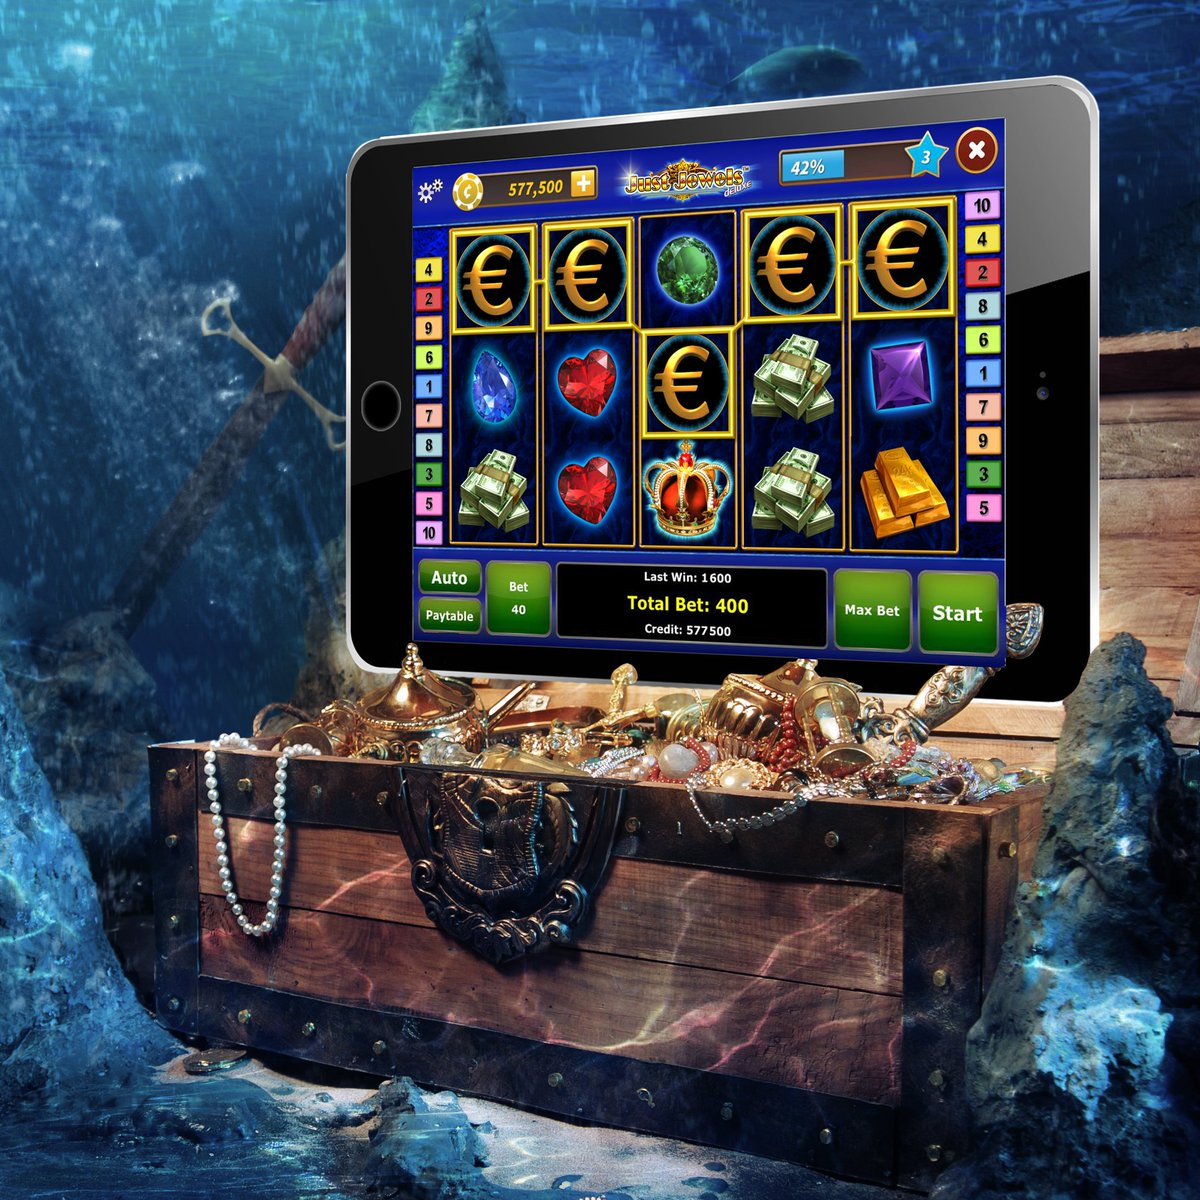 gametwist casino online cassino games